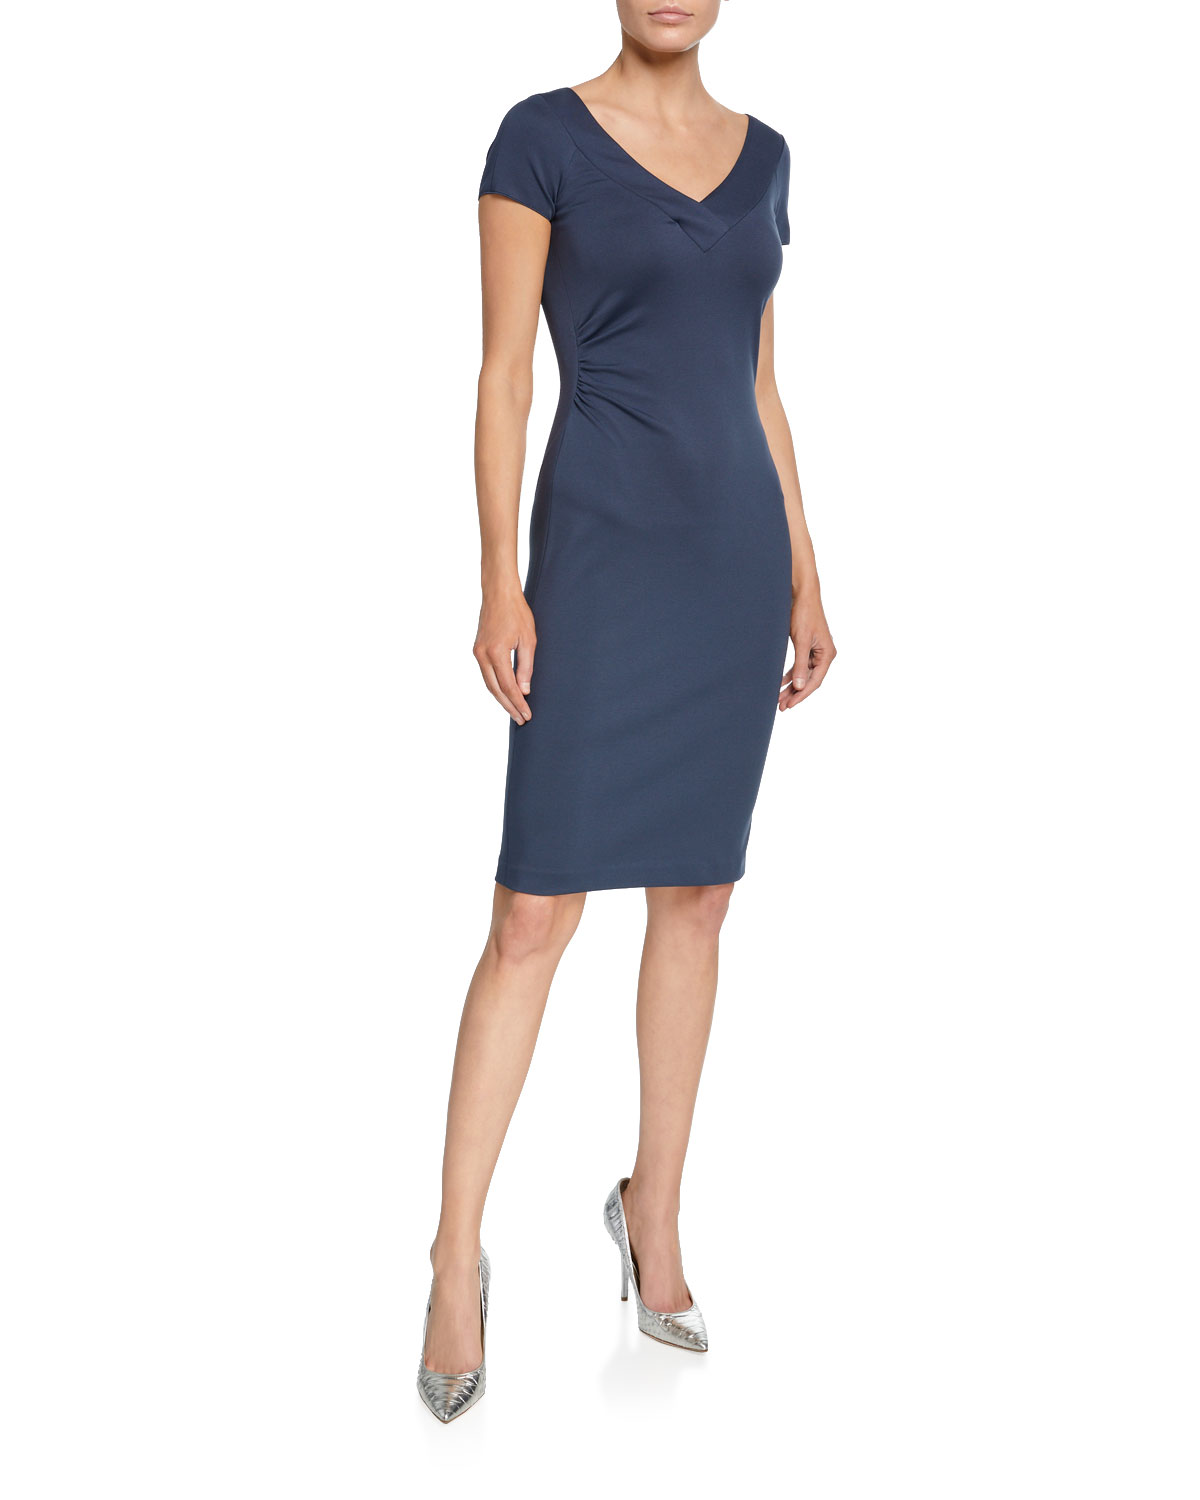 Giorgio Armani Dresses V-NECK MILANO JERSEY CAP-SLEEVE DRESS